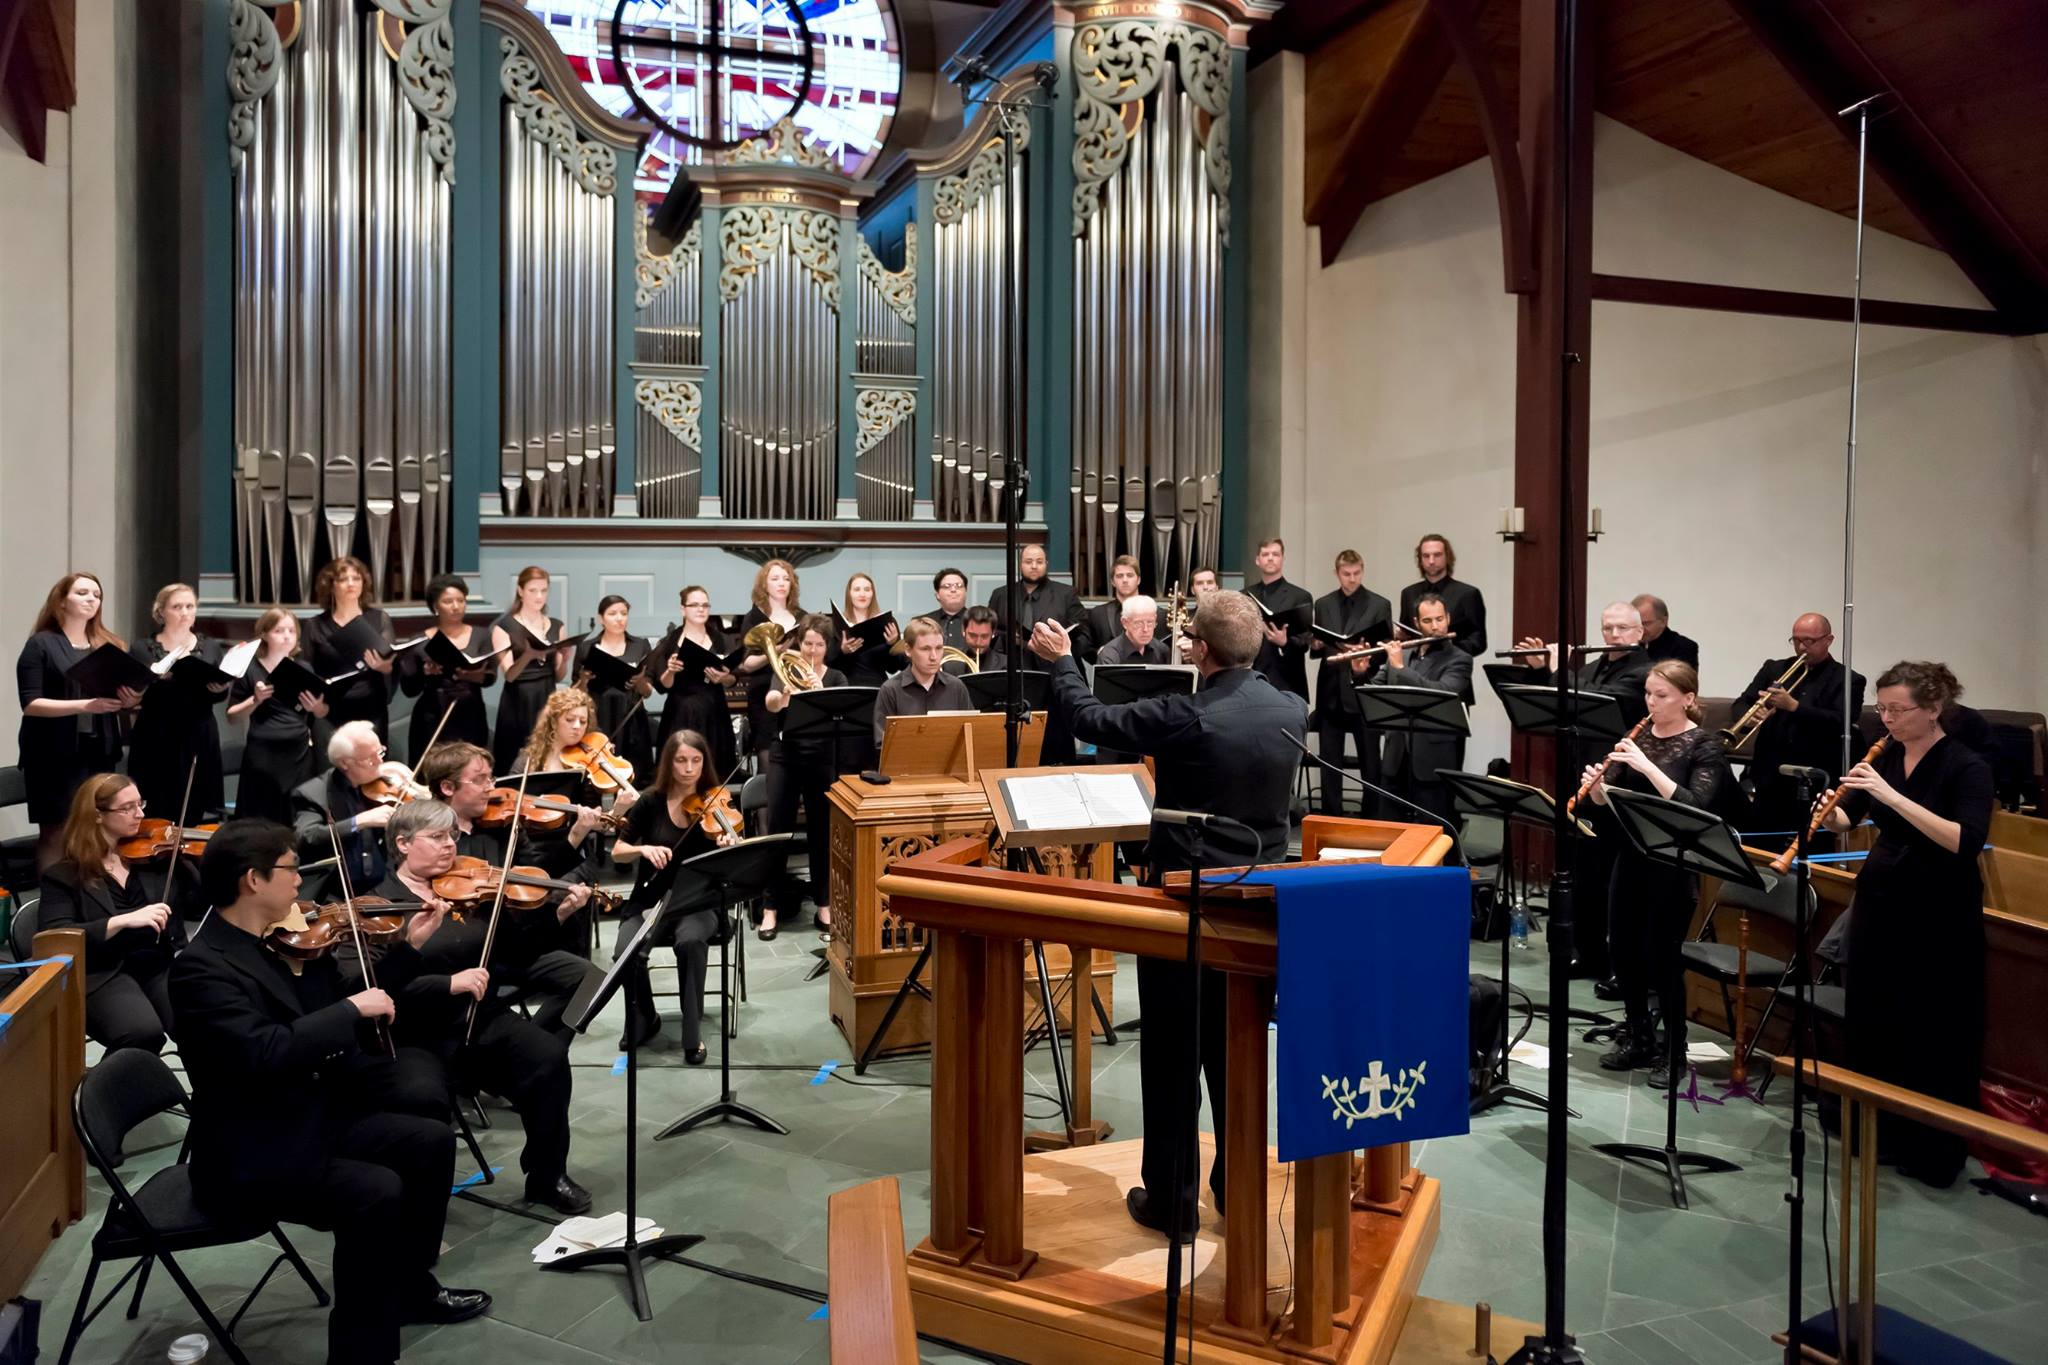 Bach Society Houston